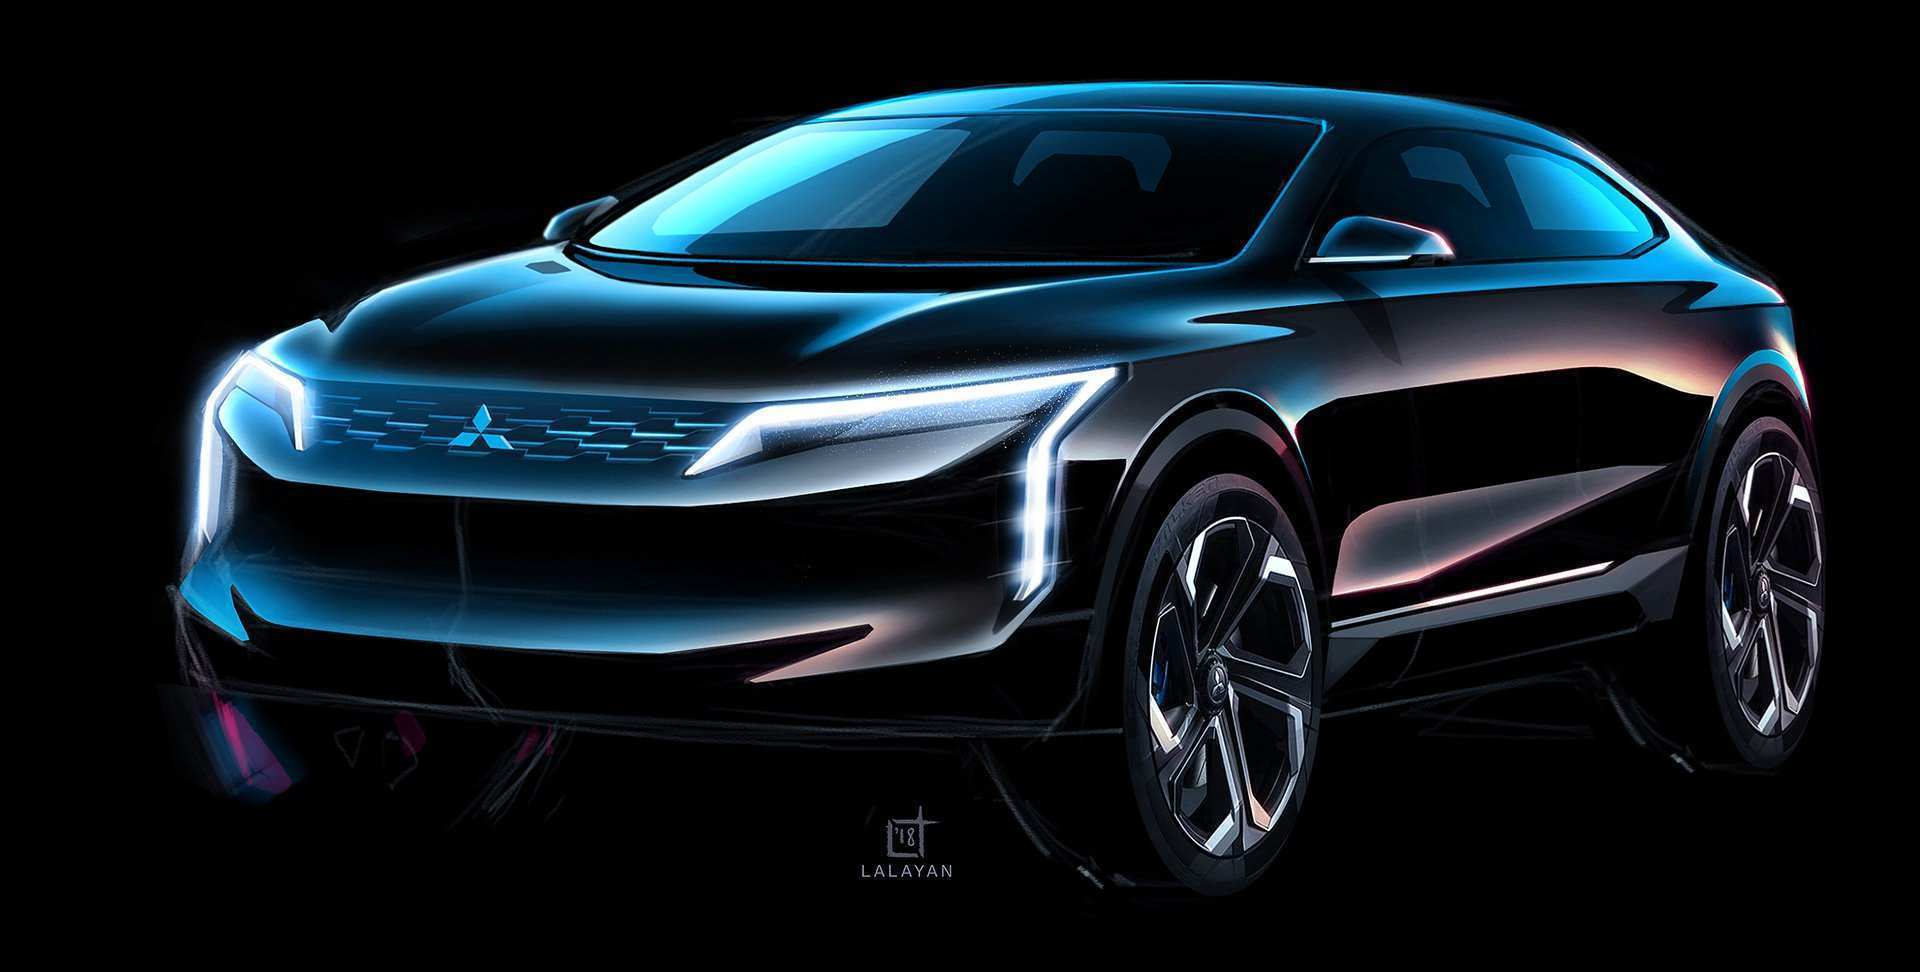 67 The Best Mitsubishi New Cars 2020 Specs And Review